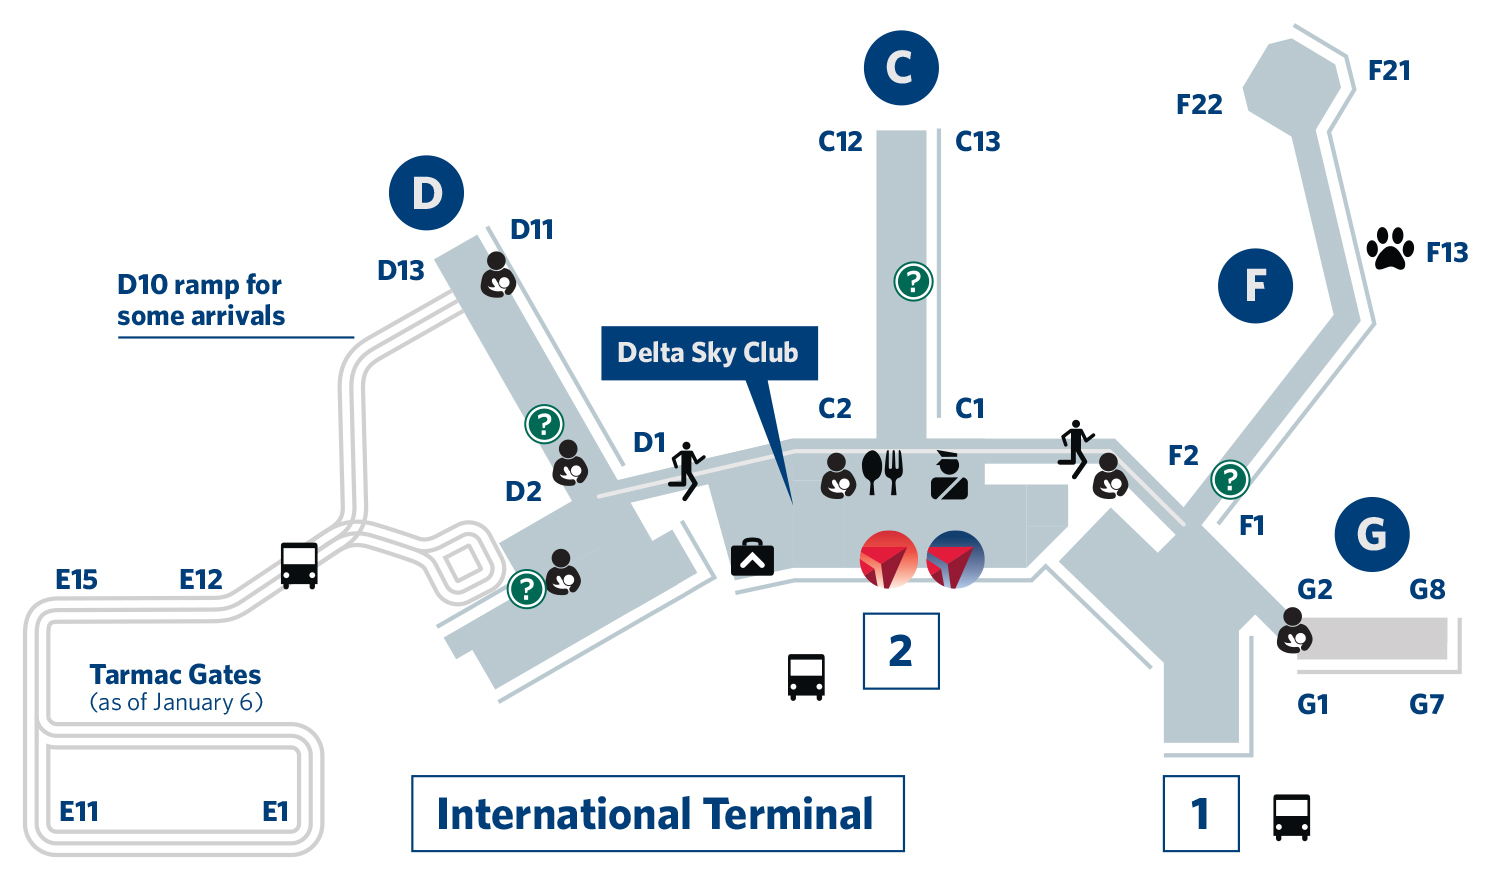 map of slc airport Search Results Salt Lake International Airport map of slc airport